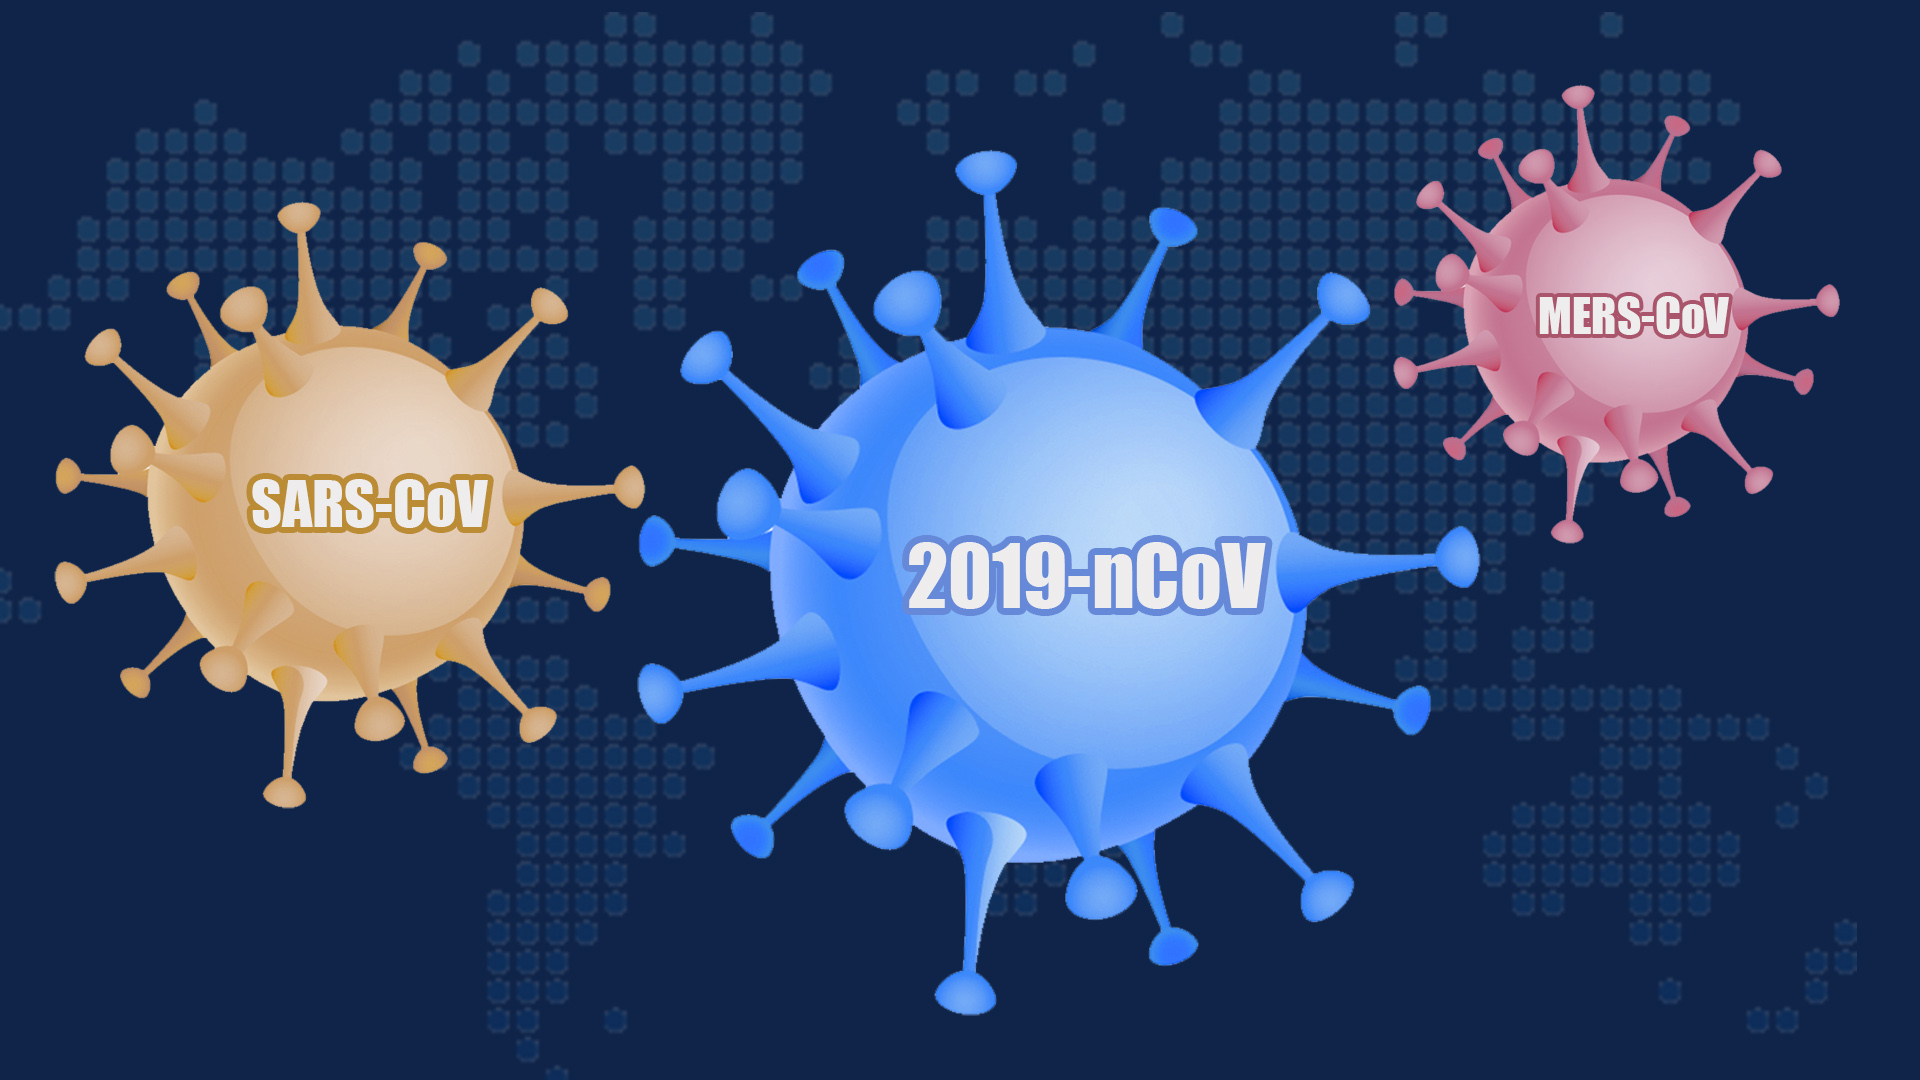 Major differences between SARS and MERS covid you must know